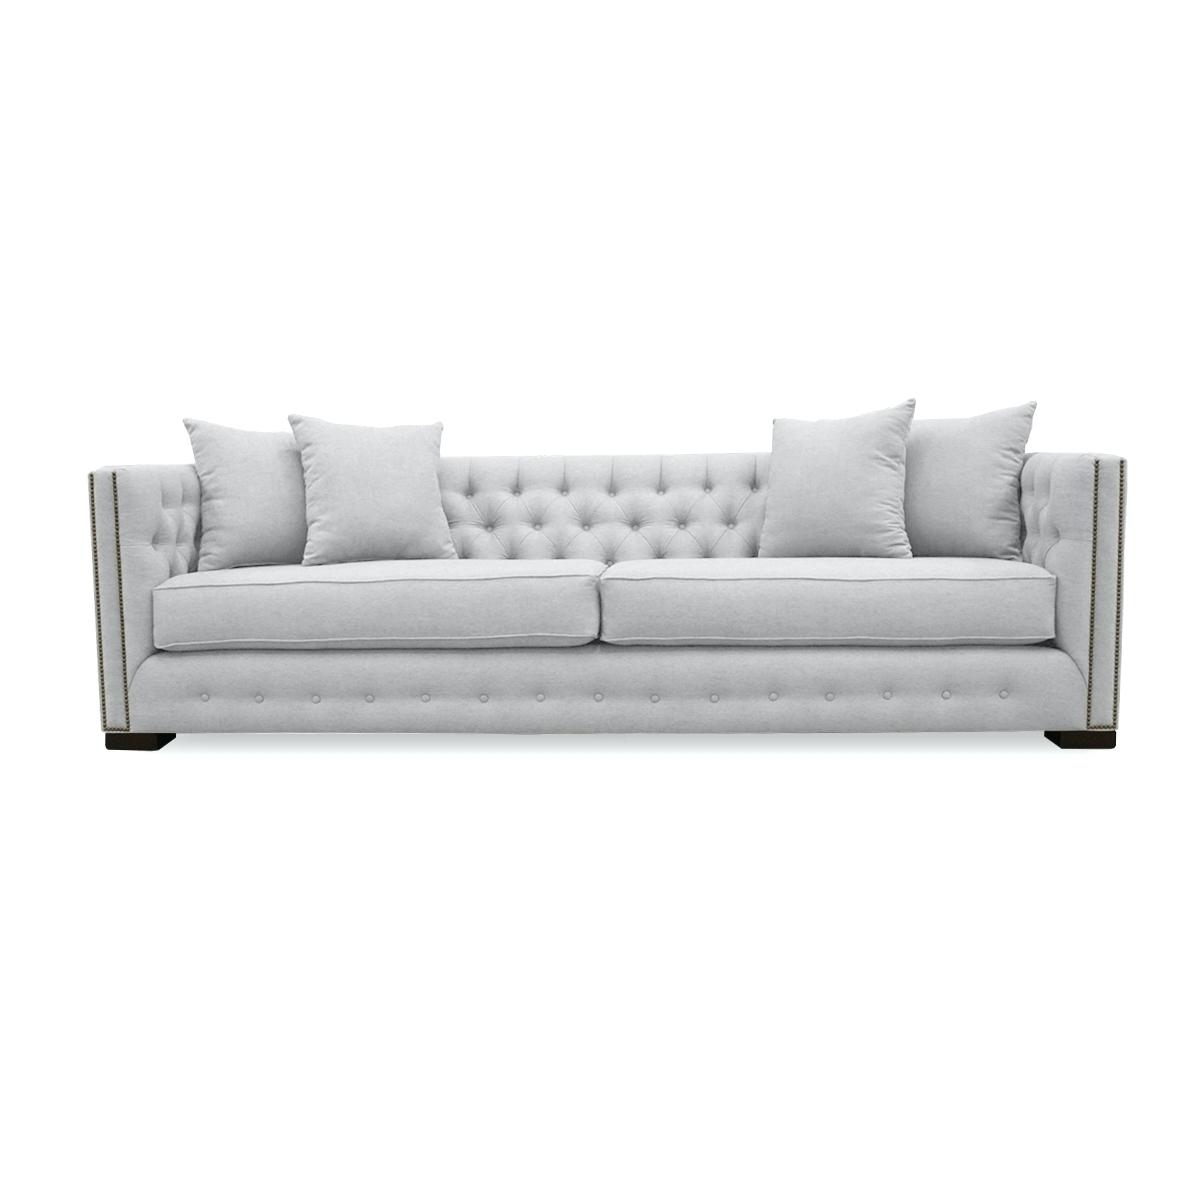 Widely Used Salt Lake City Sectional Sofas With Regard To Sofa : Grey Tufted Sofa Charcoal Gray Nailhead Light Salt Lake (View 15 of 15)